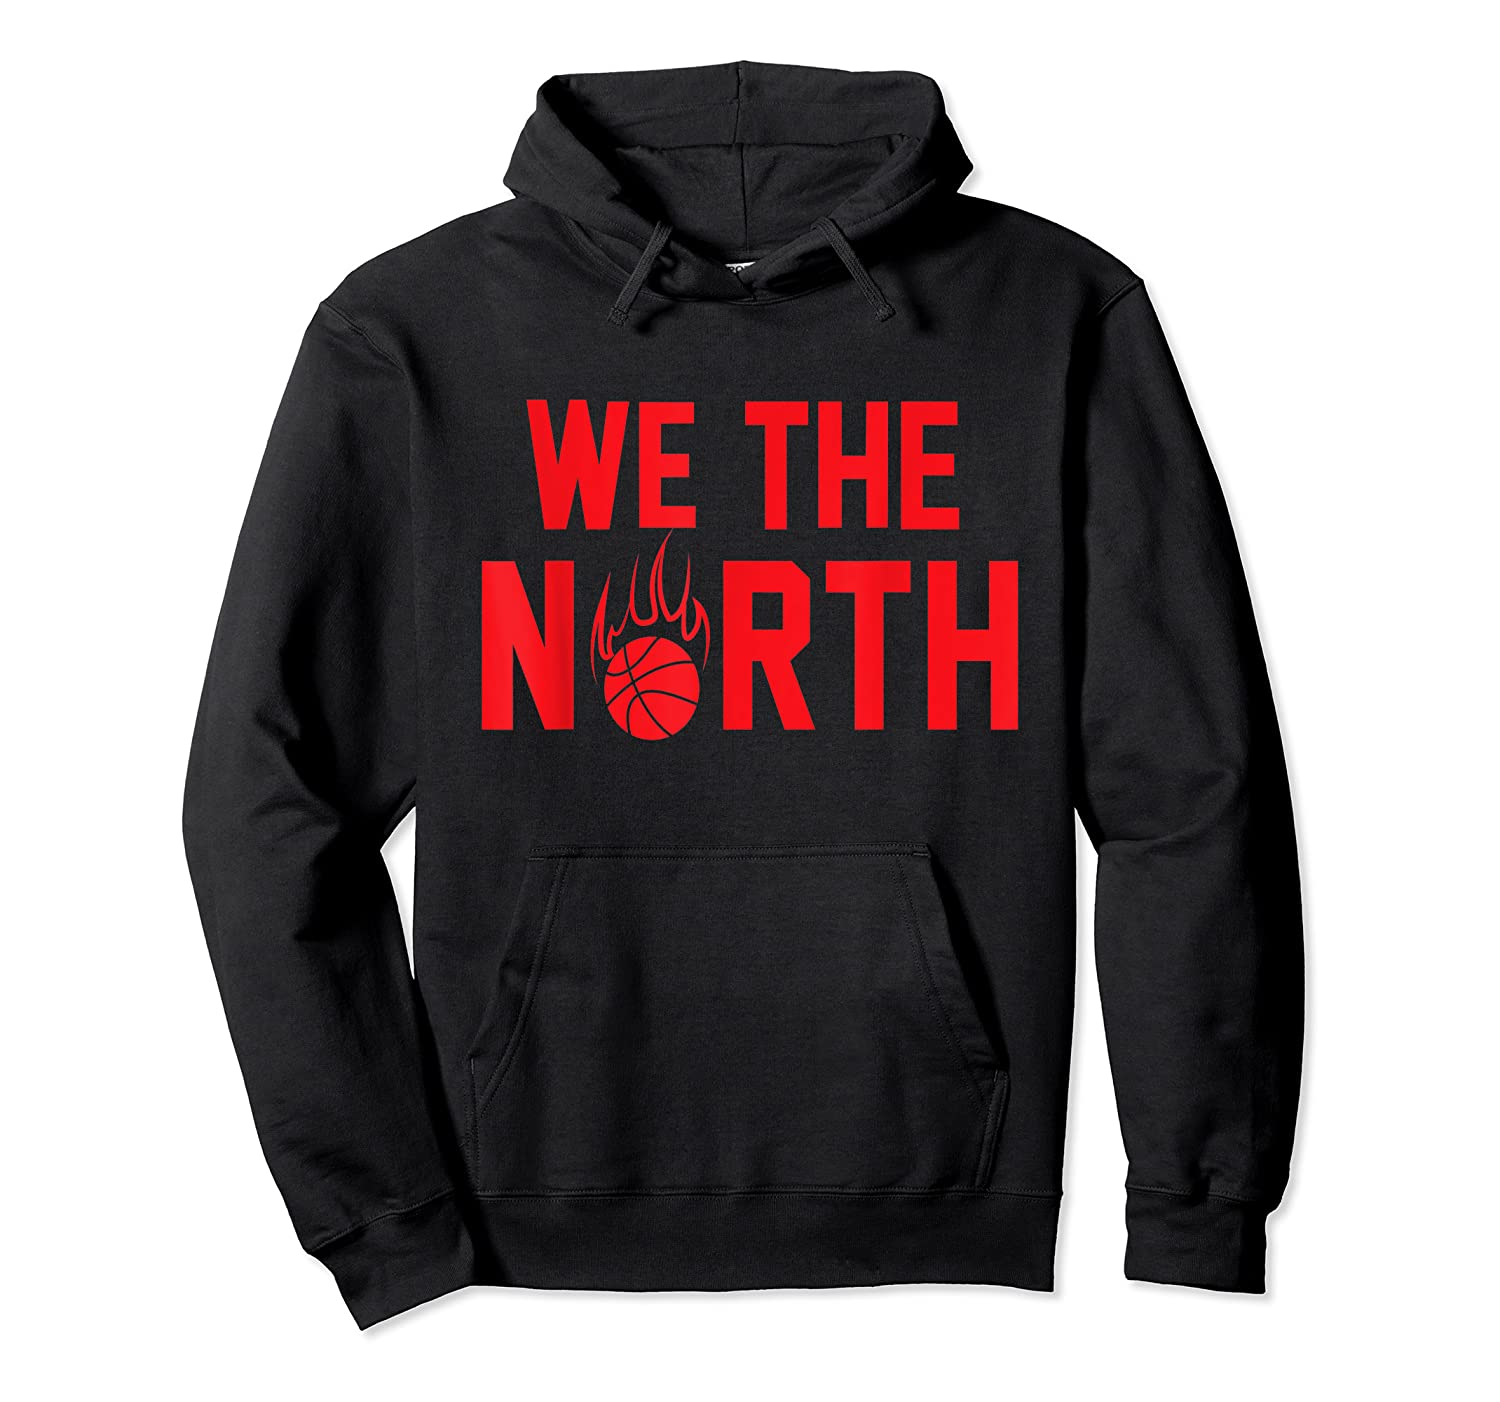 Toronto's We The Other North Basketball Gift Canada Shirts Unisex Pullover Hoodie